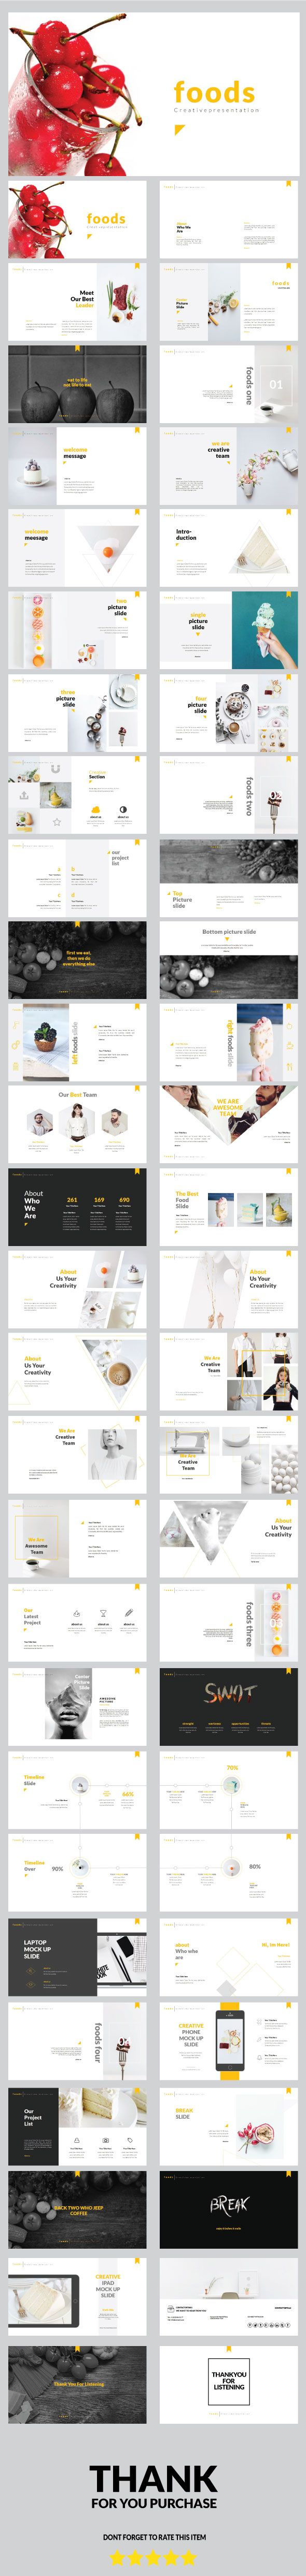 Foods Creative Keynote Template — Keynote KEY #statistics #modern • Download ➝ https://graphicriver.net/item/foods-creative-keynote-template/19158131?ref=pxcr